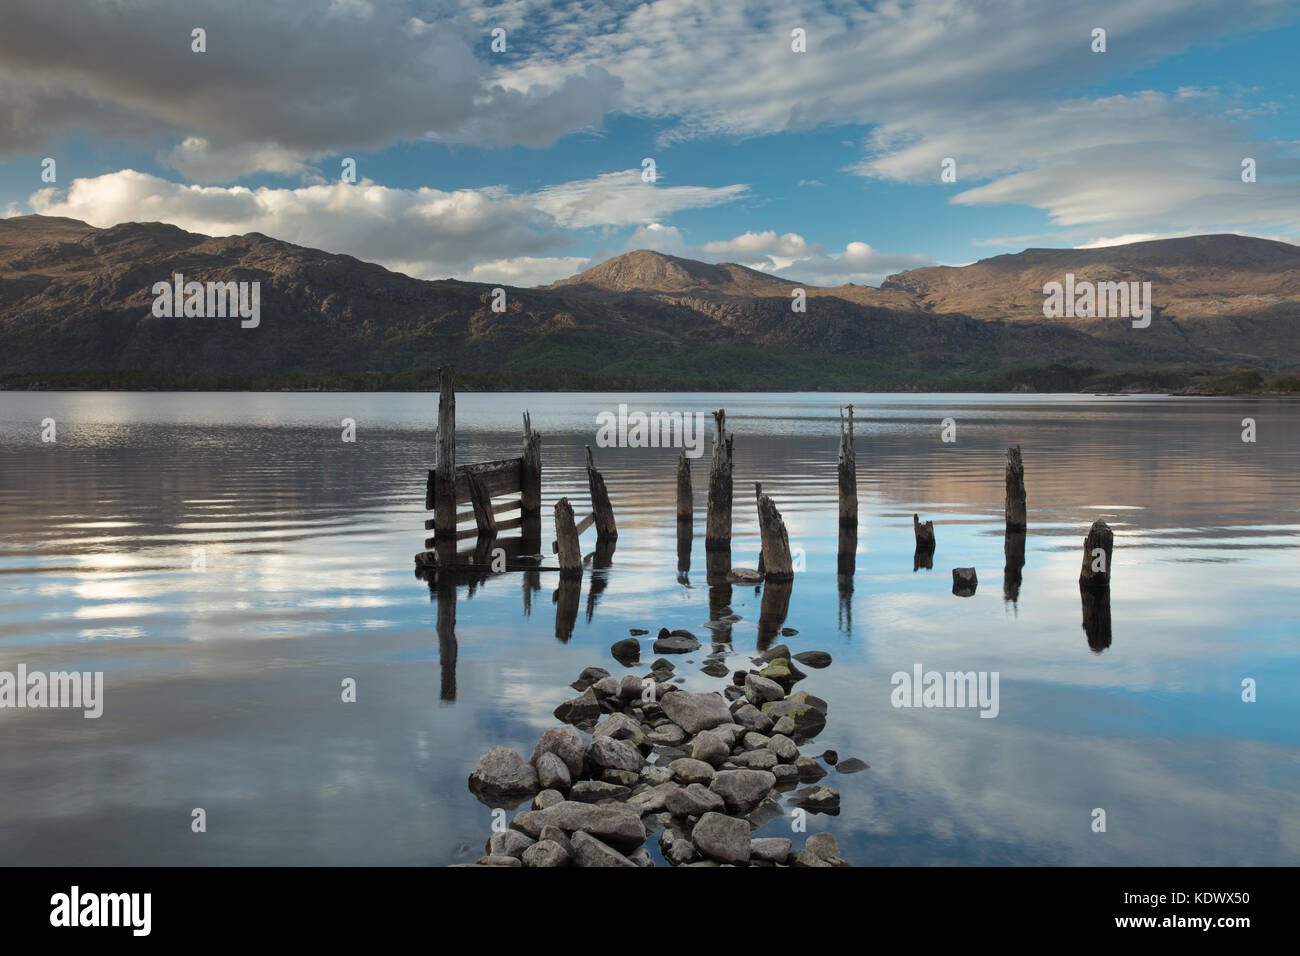 Loch Maree & Slioch at dusk, Wester Ross, Scotland, UK - Stock Image